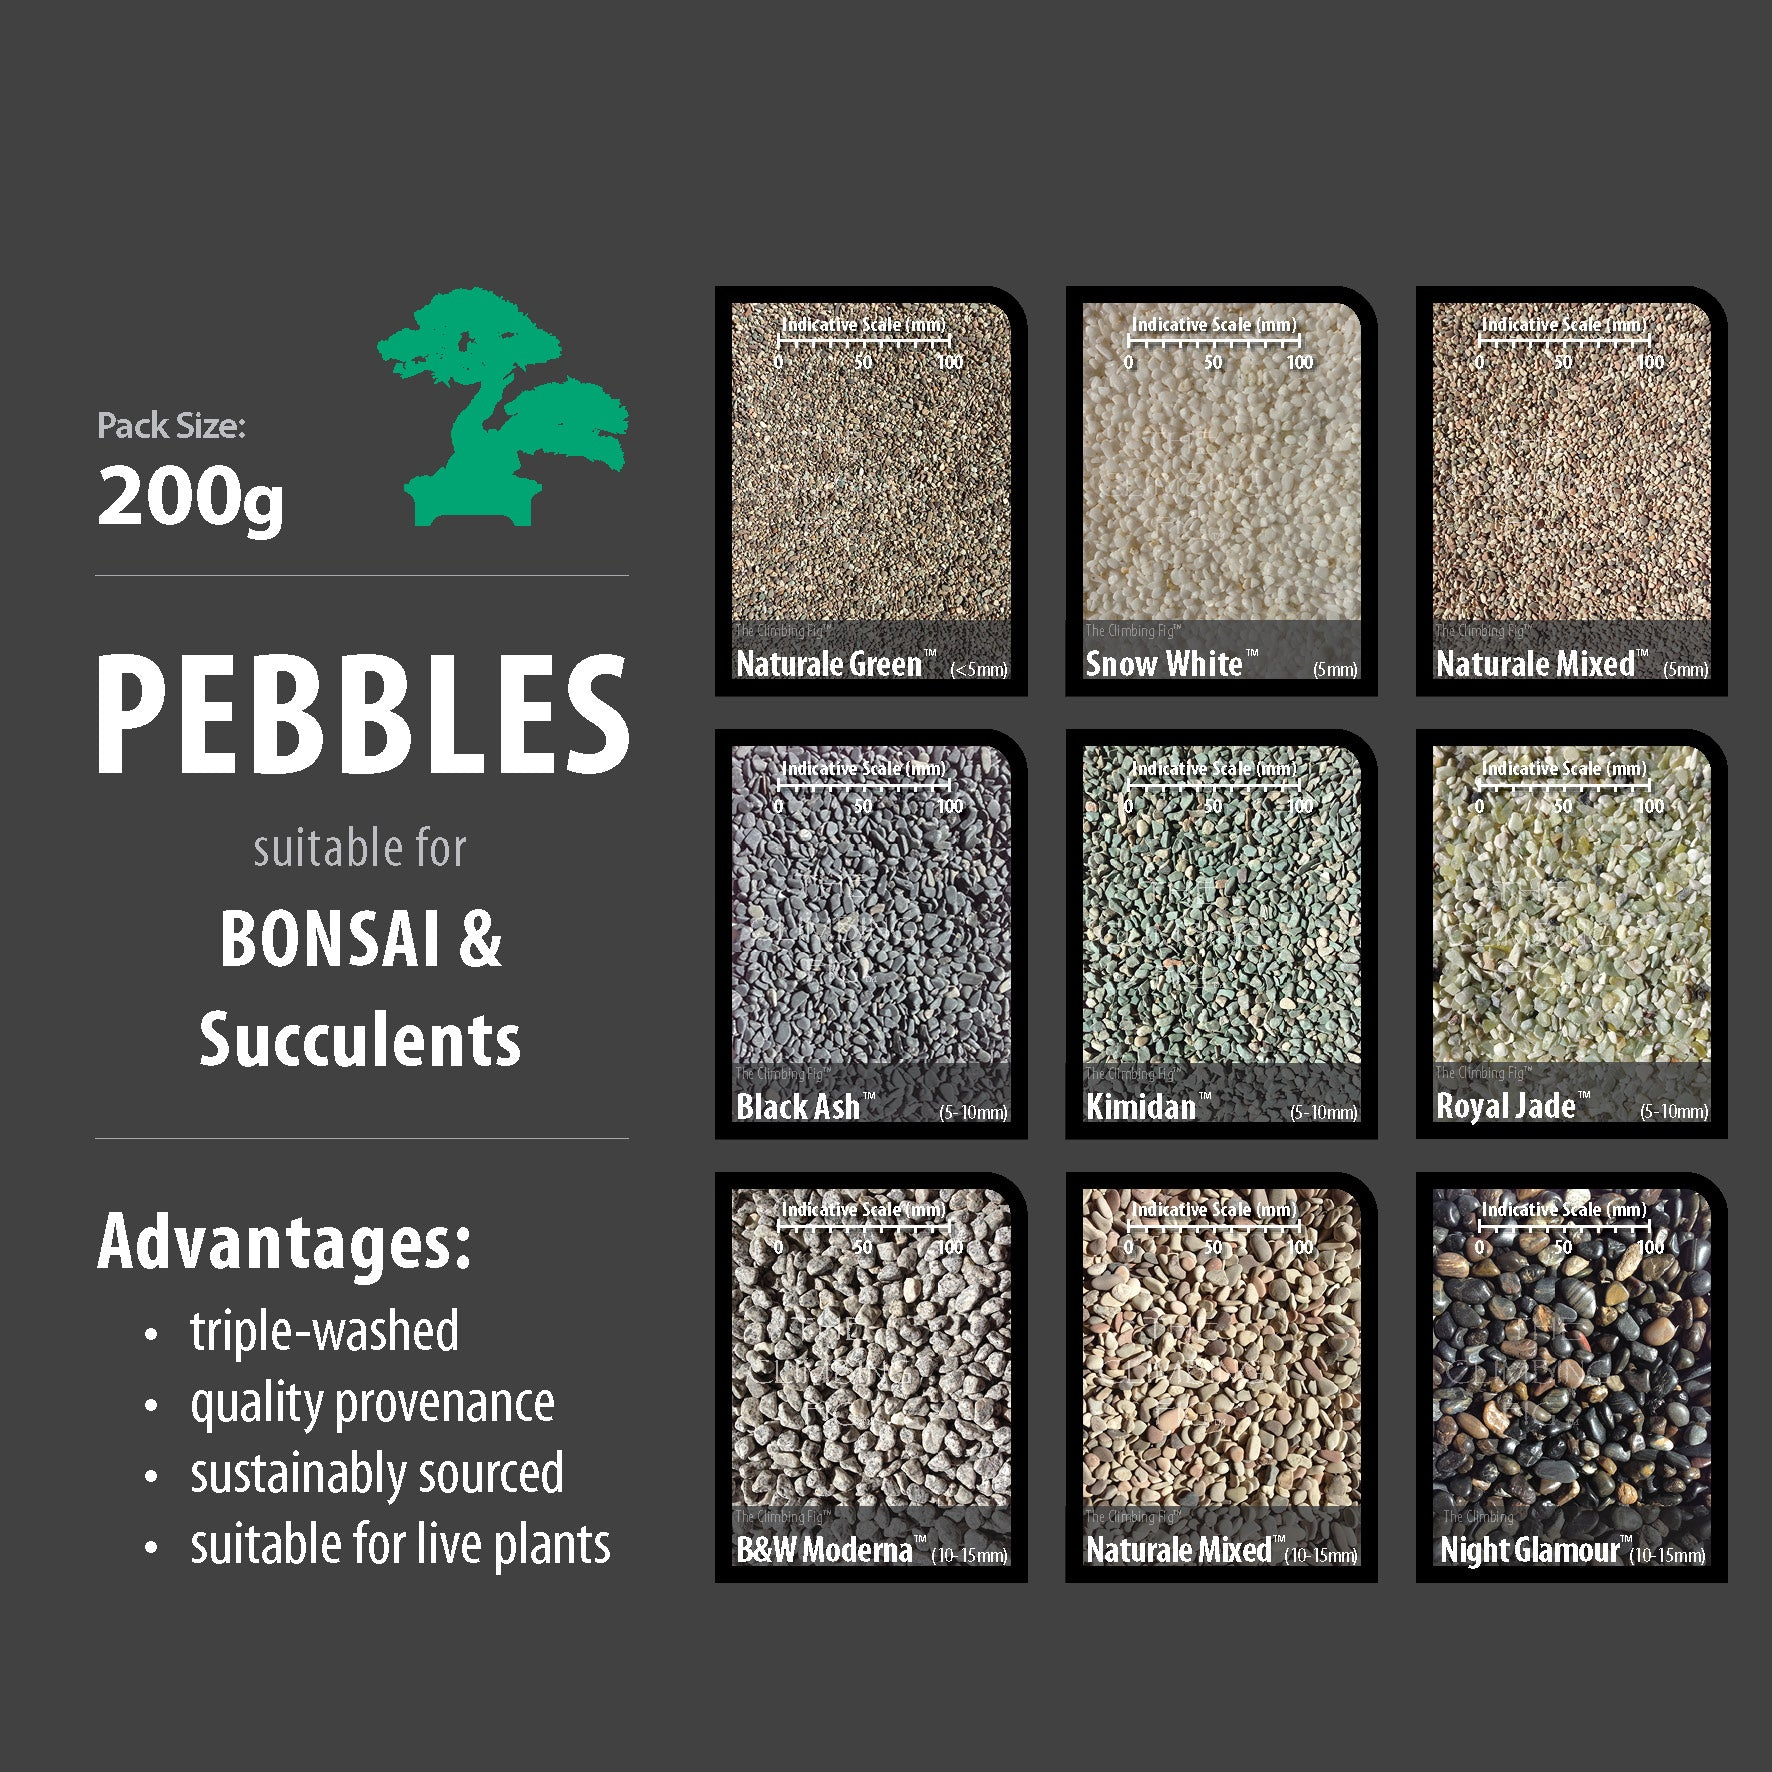 200g Decorative Pebbles for Bonsai, Succulents & Terrariums. Washed large range